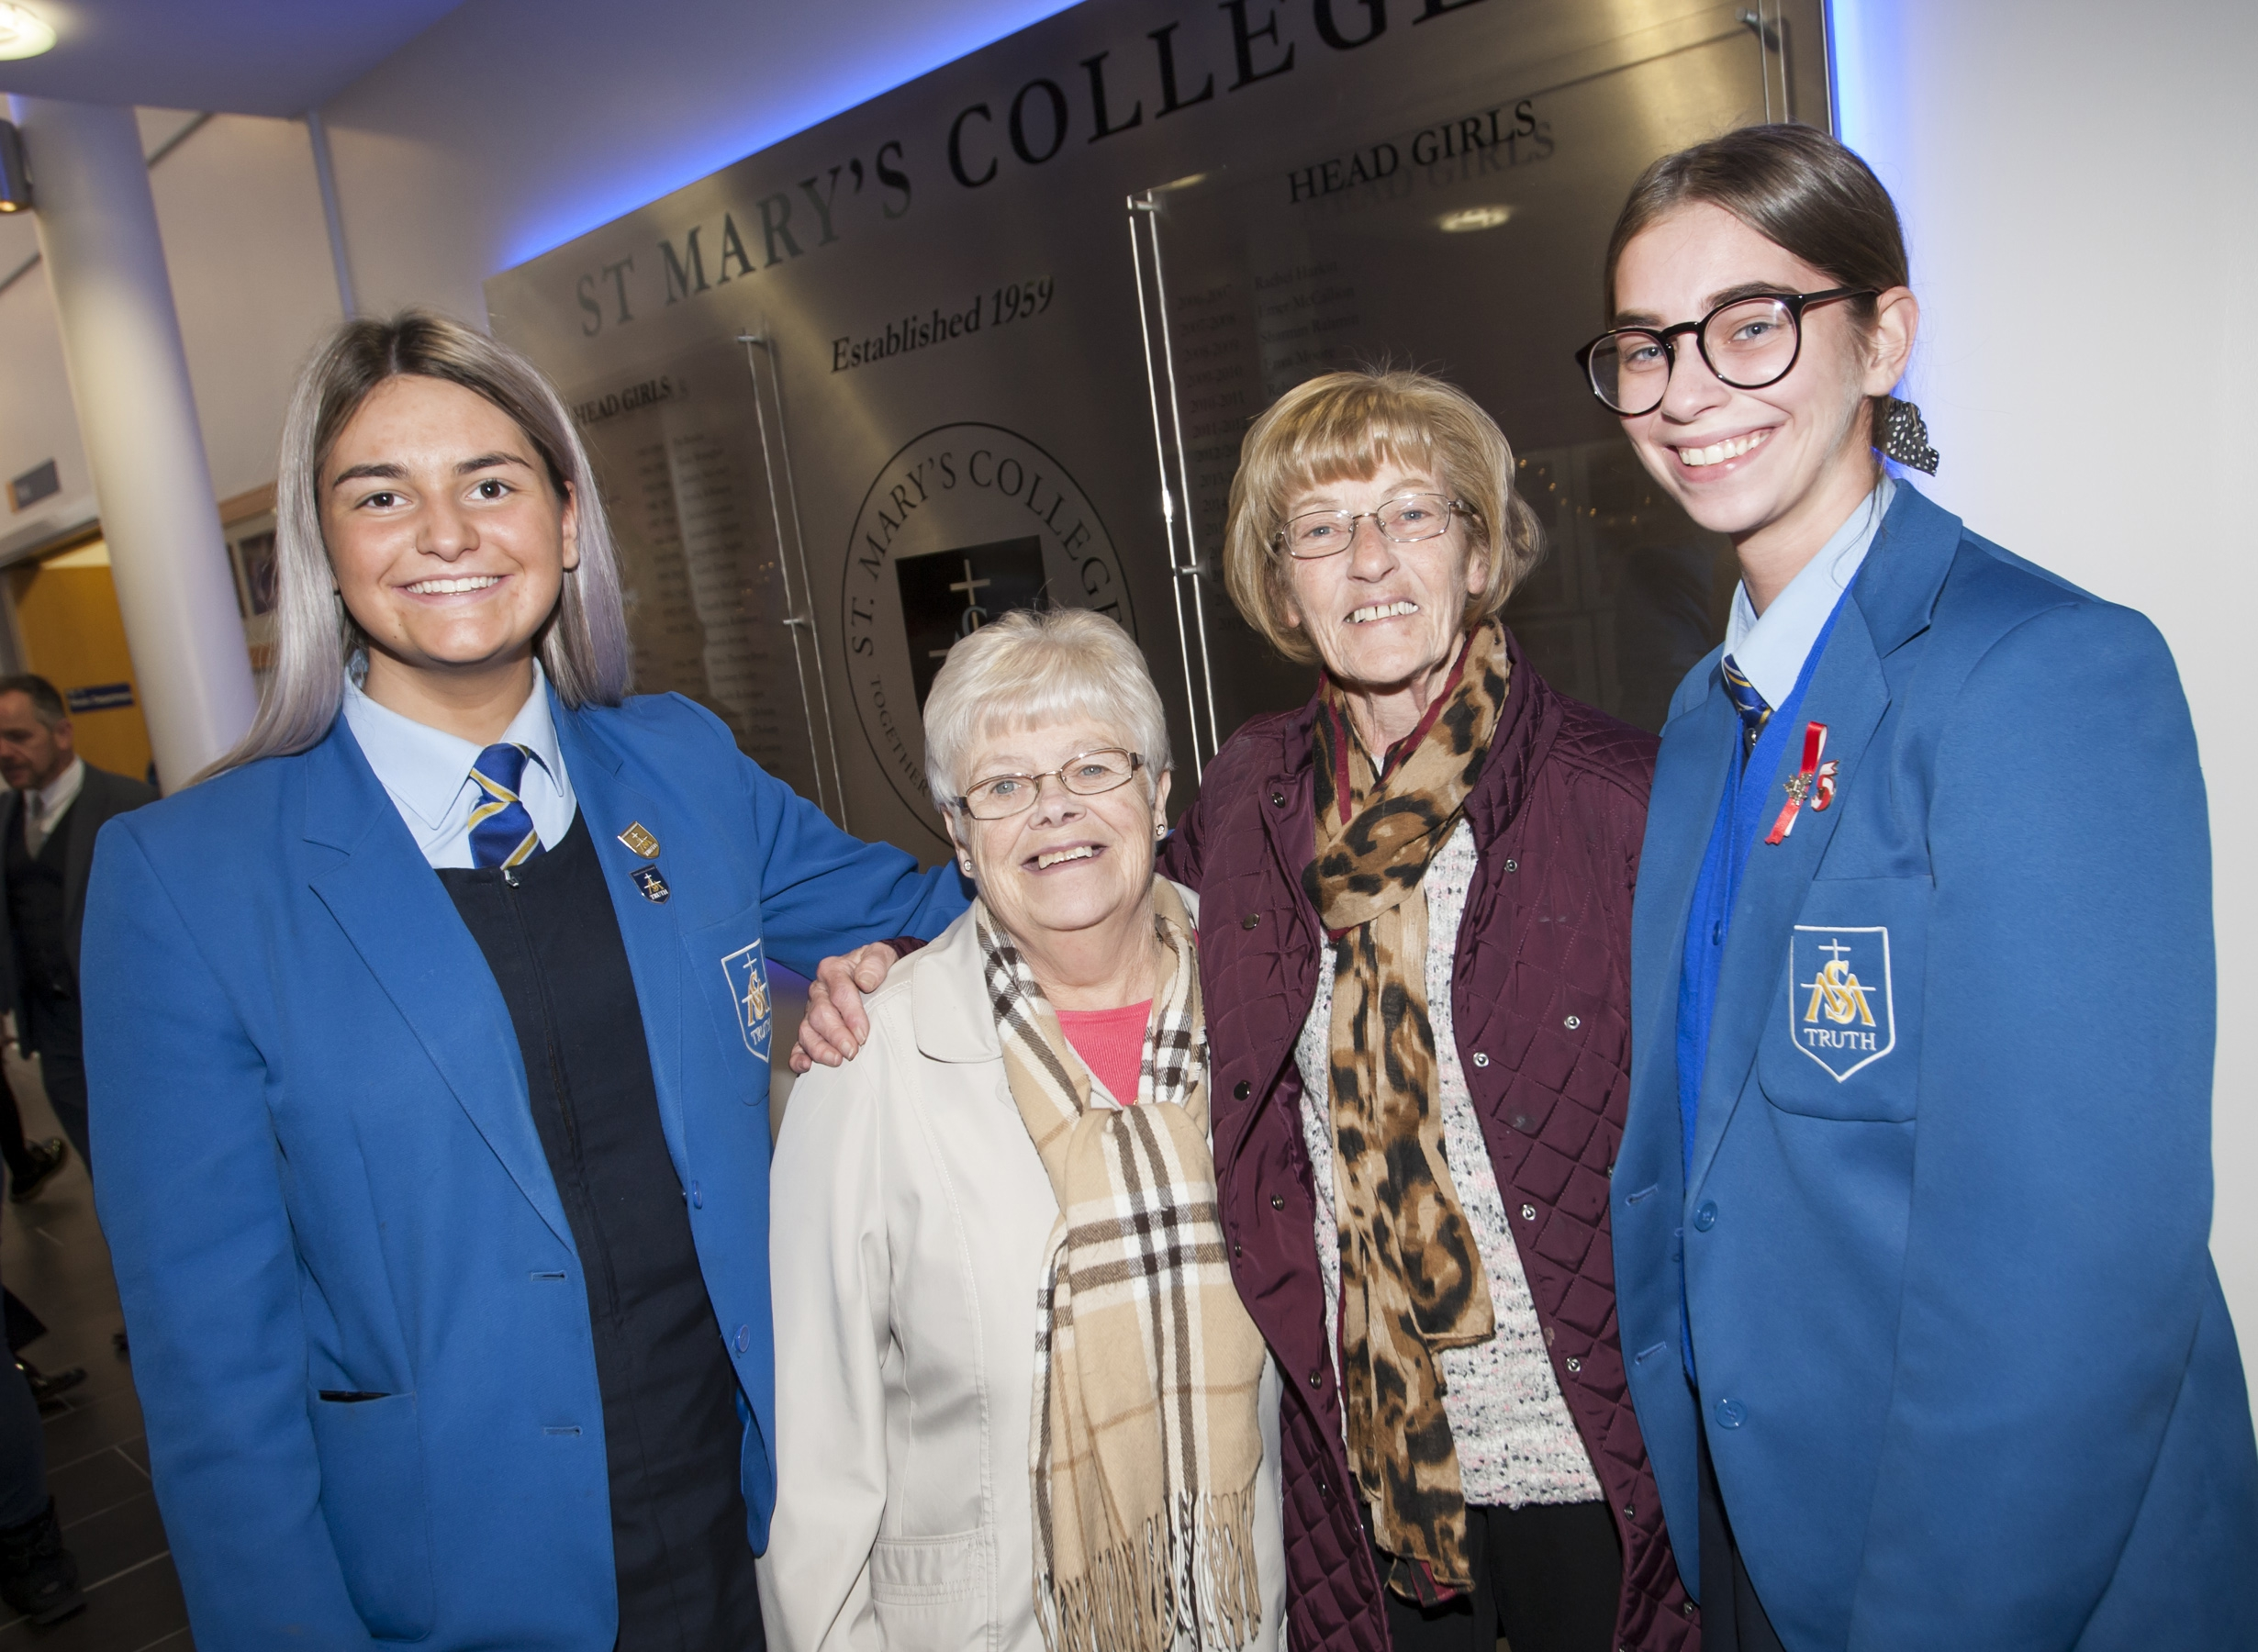 Mary Carlin (nee Clarke) and Rosaleen McLaughlin, past pupils pictured with current students Mollie McMonagle and Ciara Hasson on Friday.